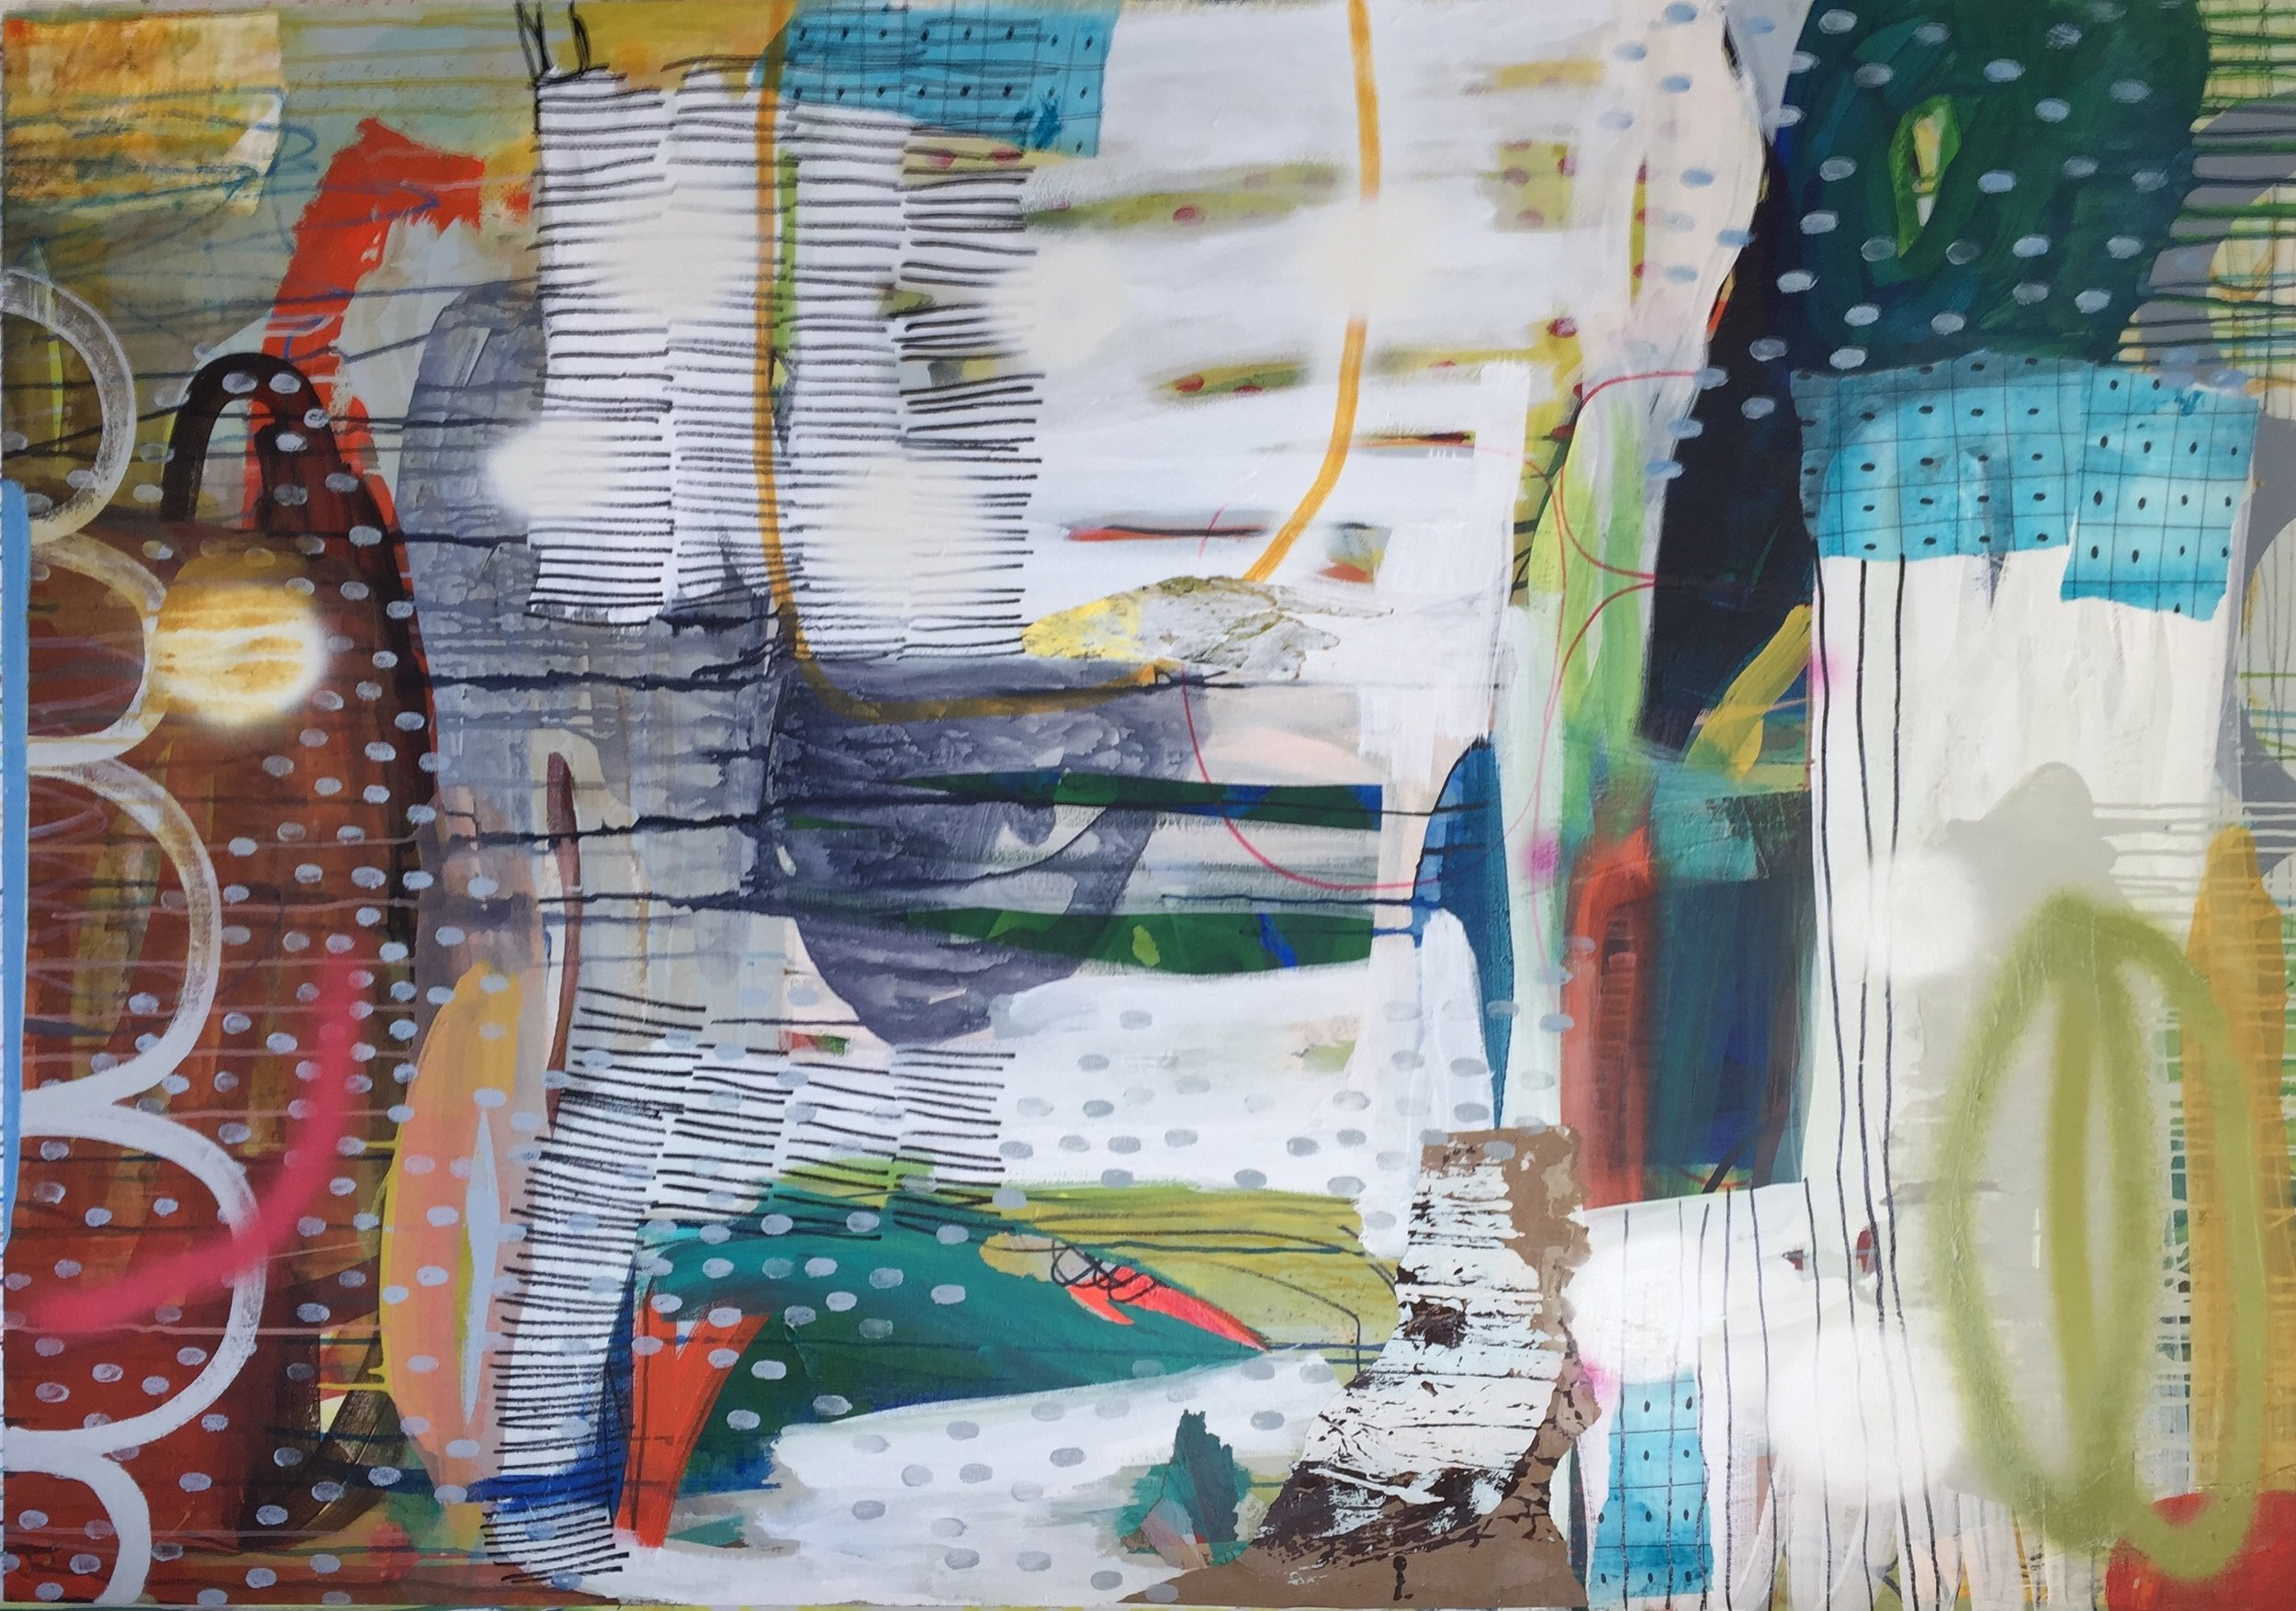 Loquacious #4 , Mixed media on canvas, 48 x 60 in.  Available at Jennifer Perlmutter Gallery